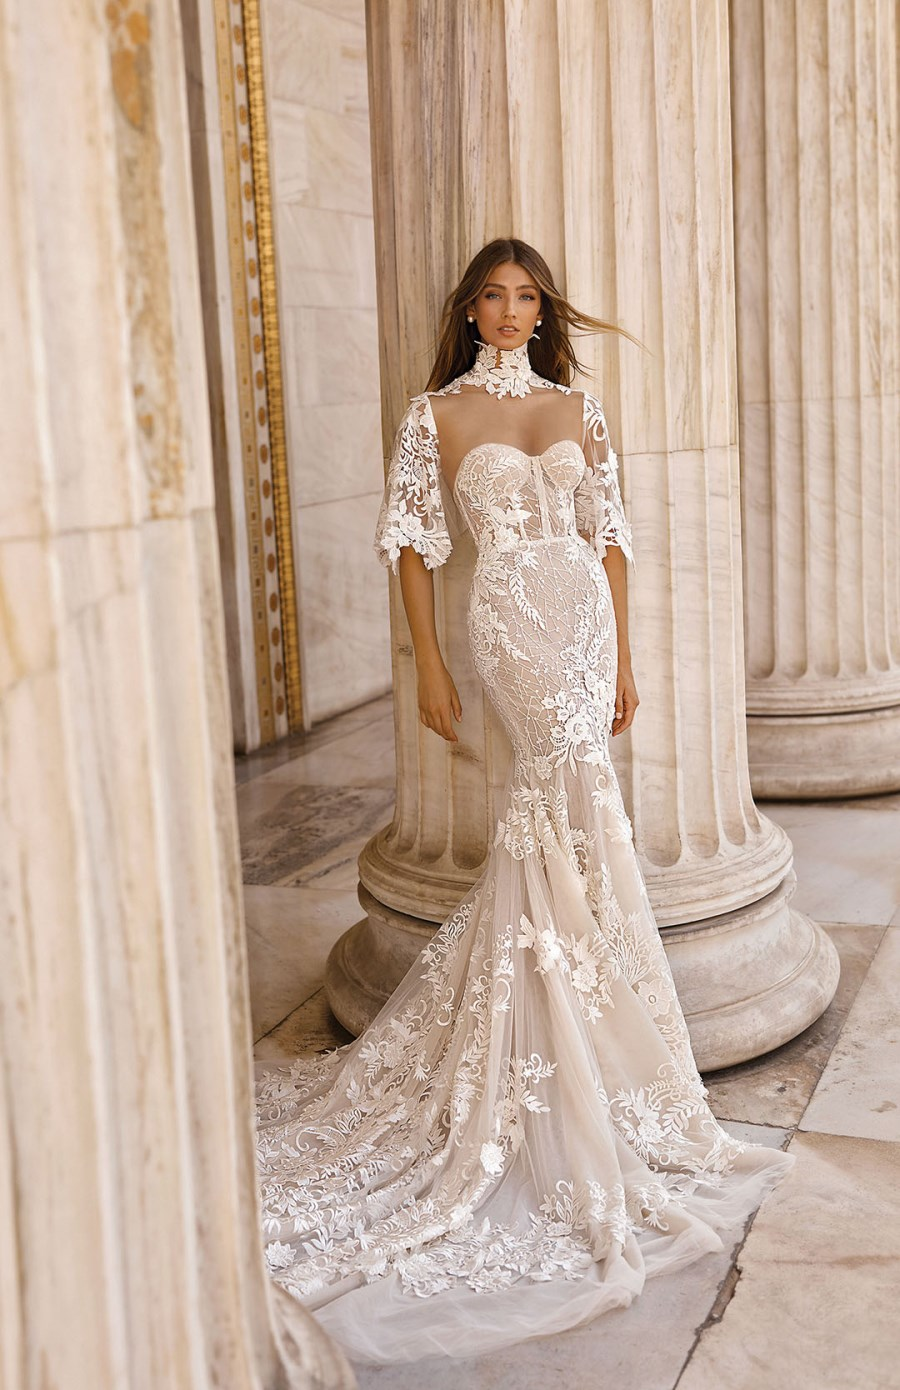 berta-wedding-dress-2019-1 (4)_3